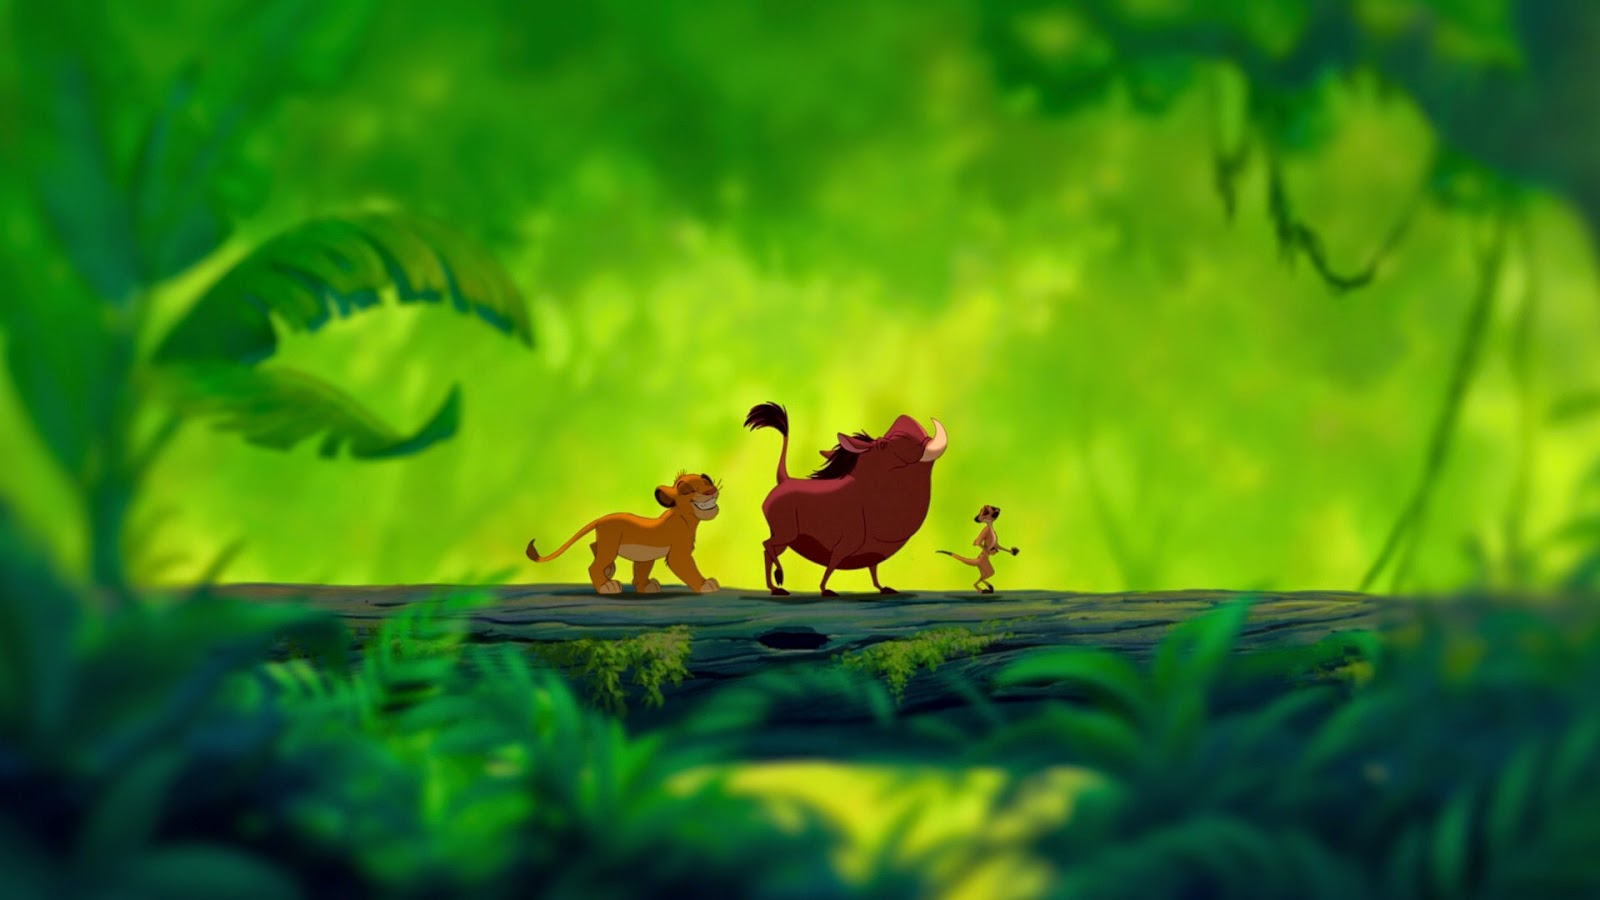 lion king wallpapers hd beautiful wallpapers collection 2014